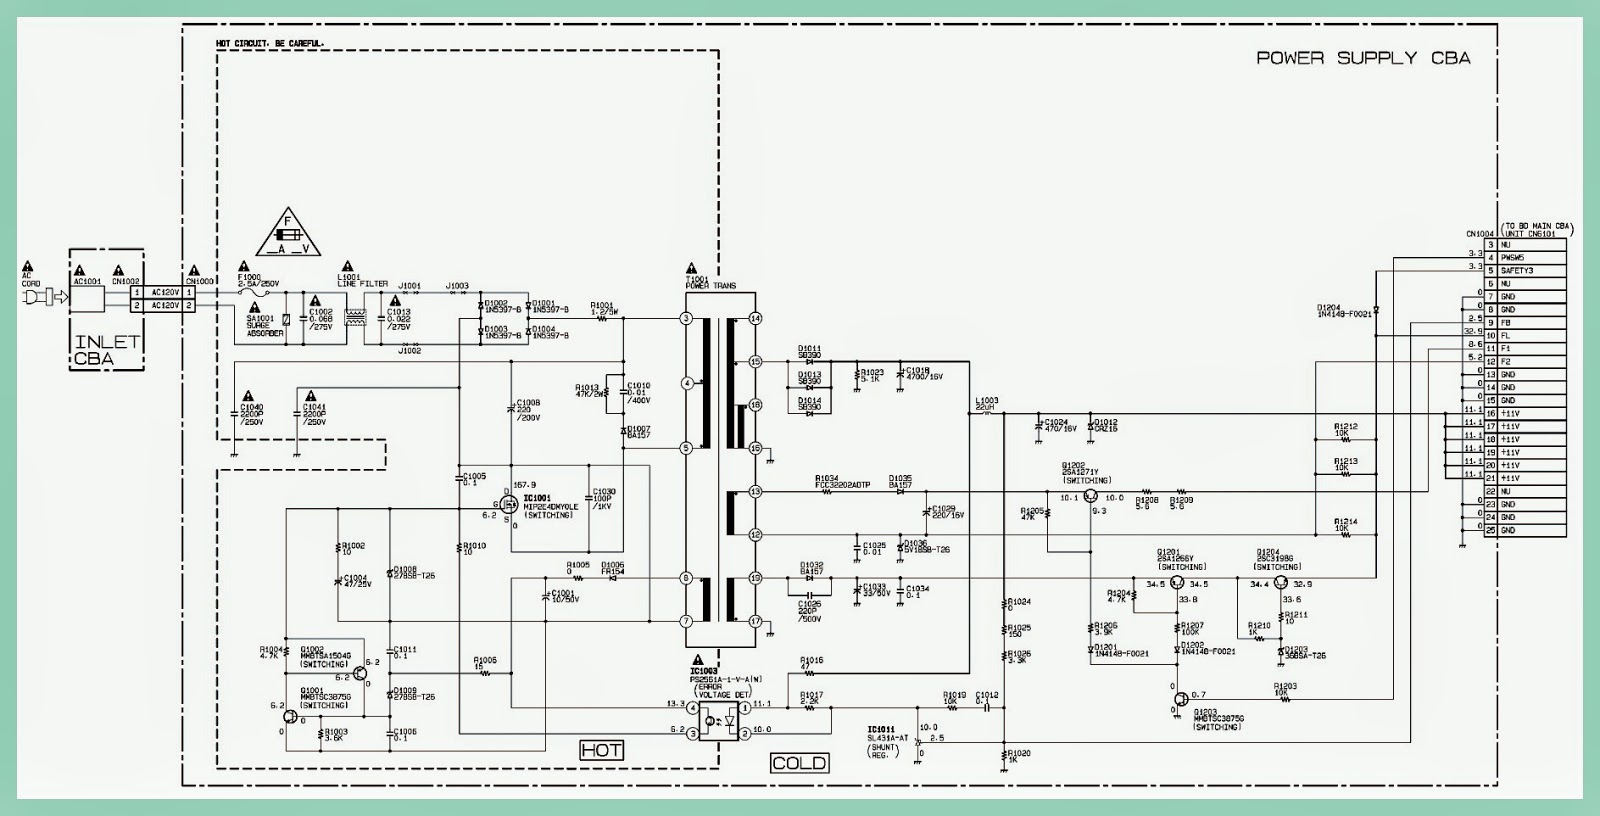 Belgium Travel Map besides 7 1 Surround Diagram Wiring furthermore Watch together with dolby Atmos Receivers furthermore Wiring Diagrams To Extend Ir Remote For Onkyo Receivers. on onkyo wiring diagram